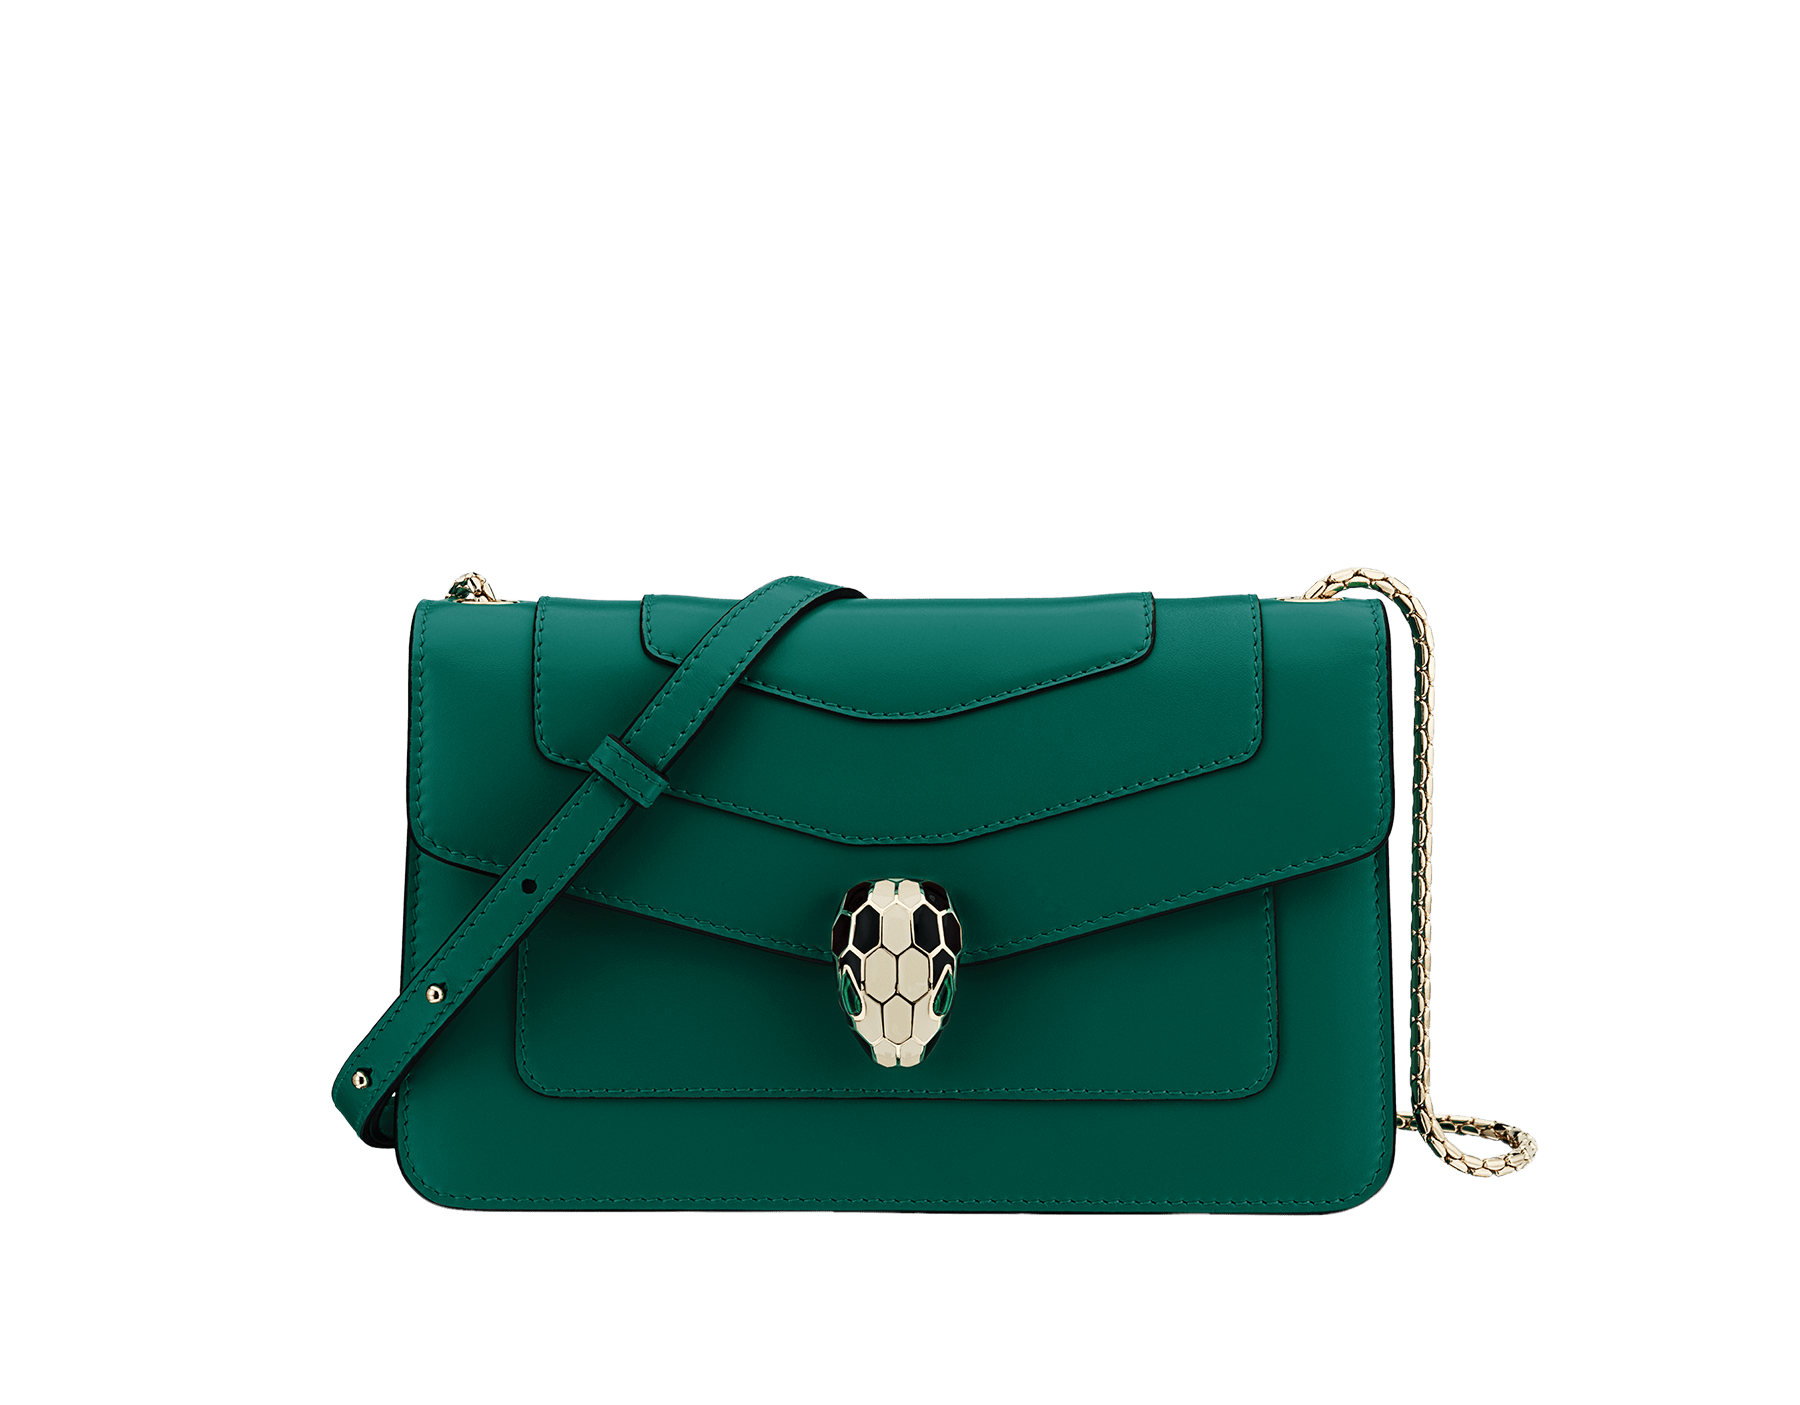 Shoulder bag in Serpenti Forever emerald green calf leather with brass light gold plated Serpenti head closure in black and white enamel with eyes in malachite. 38065 image 1